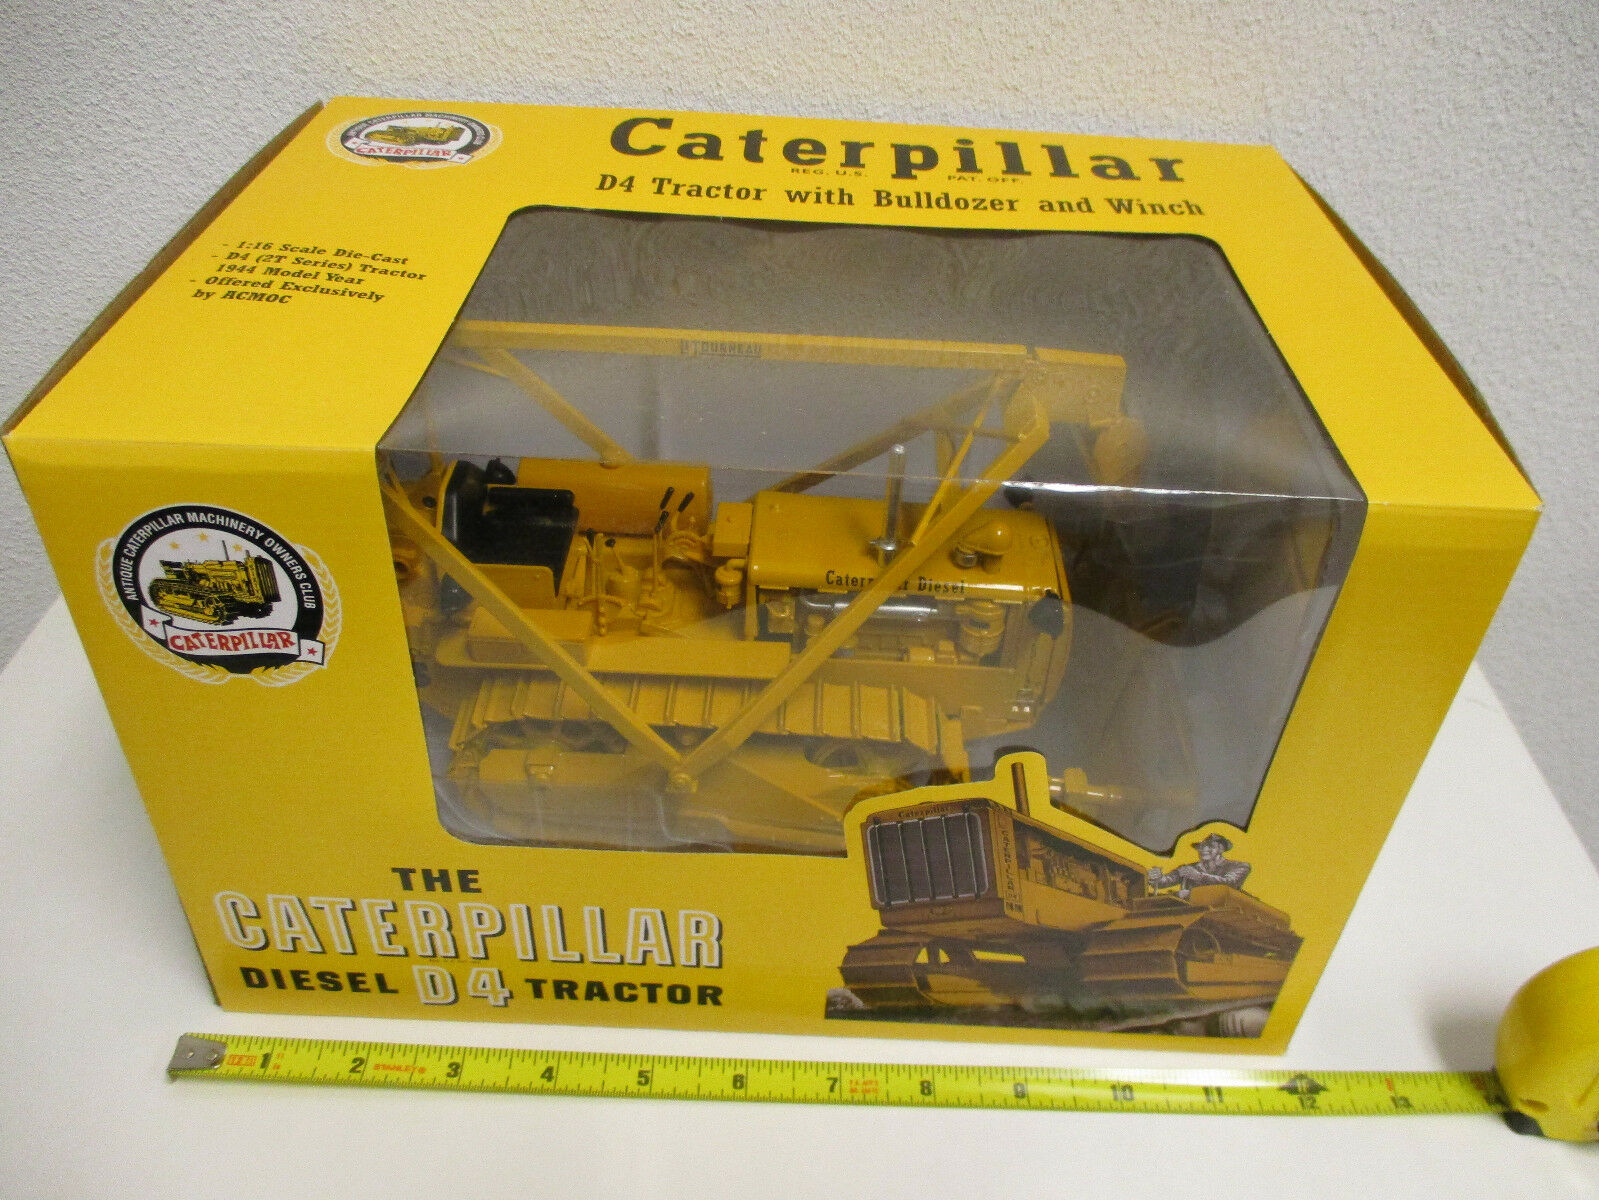 Caterpillar D4 Crawler With Bulldozer Bulldozer Bulldozer and Winch ACMOC Edition By SpecCast 2109a3